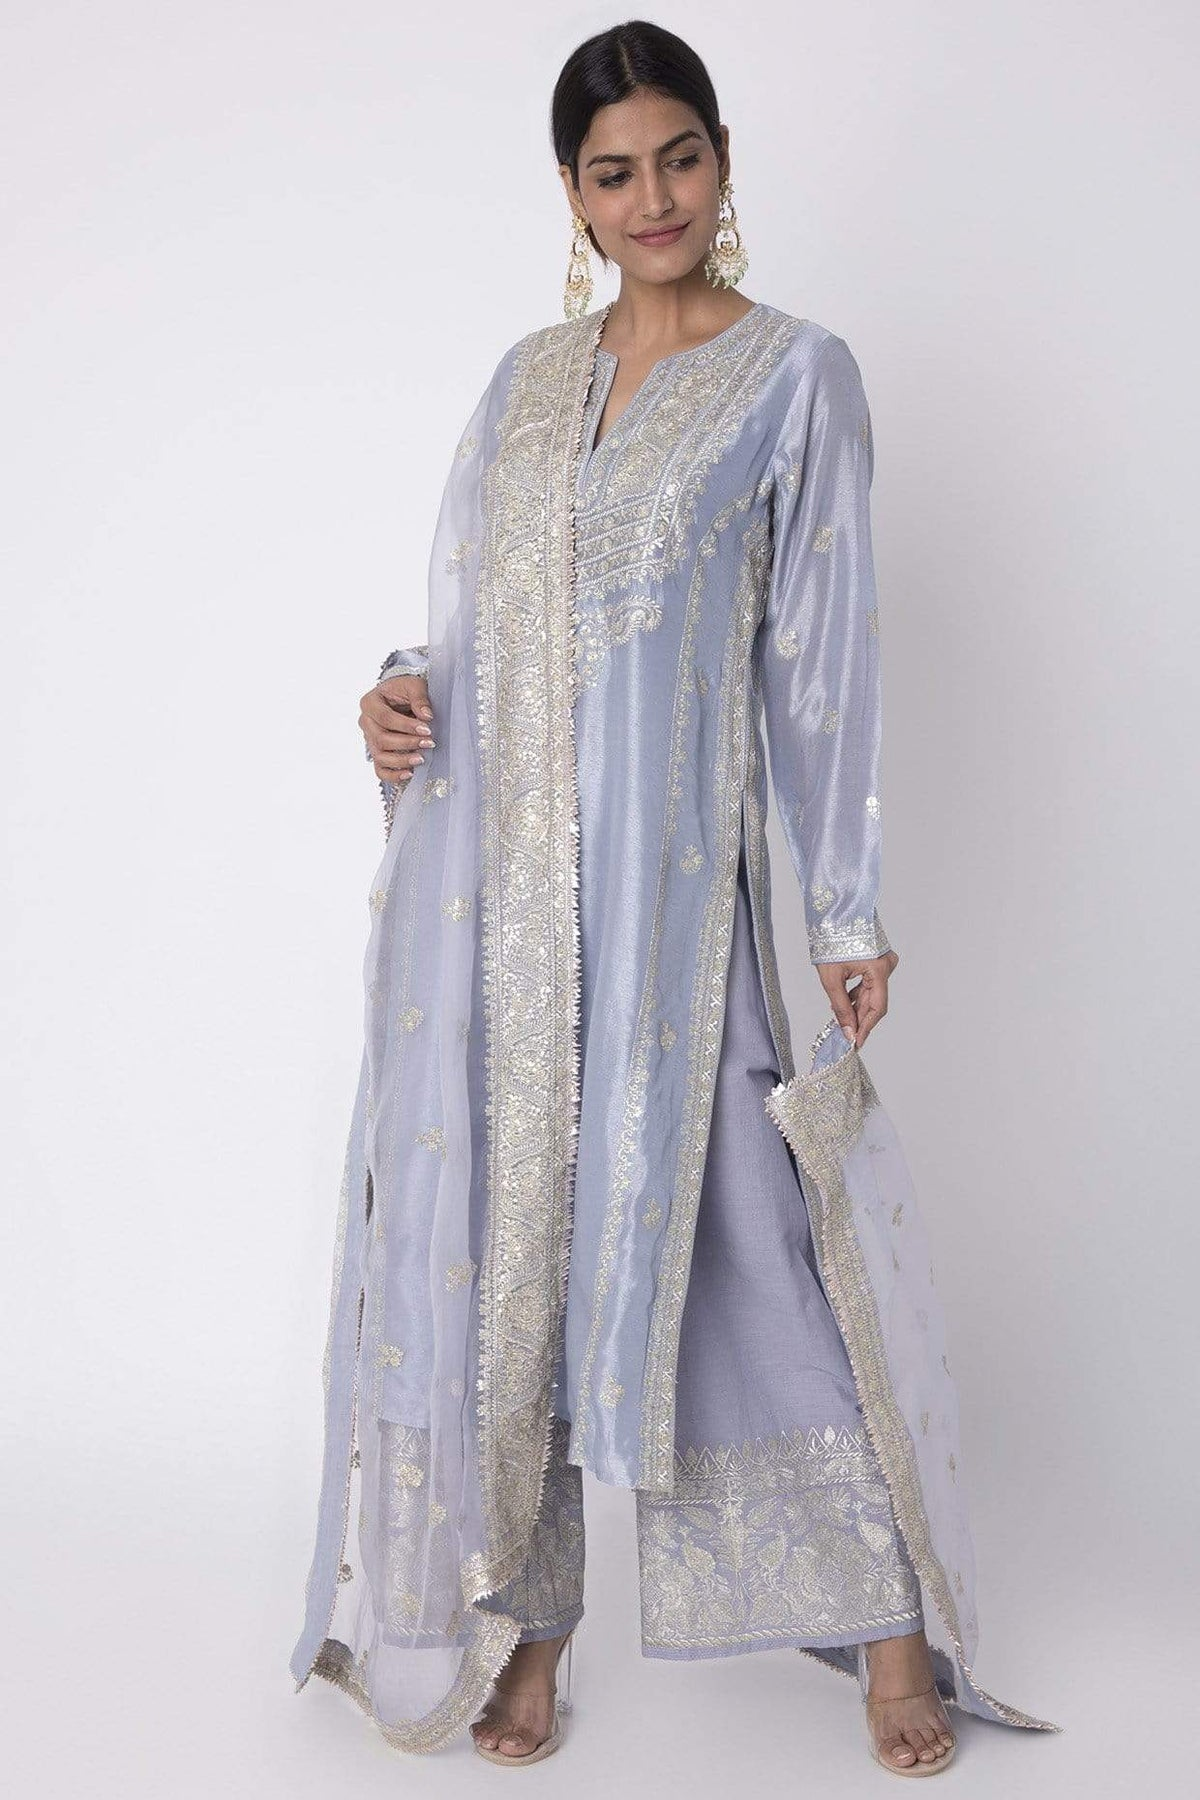 Gopi Vaid Kurtas Lilac cotton silk long set